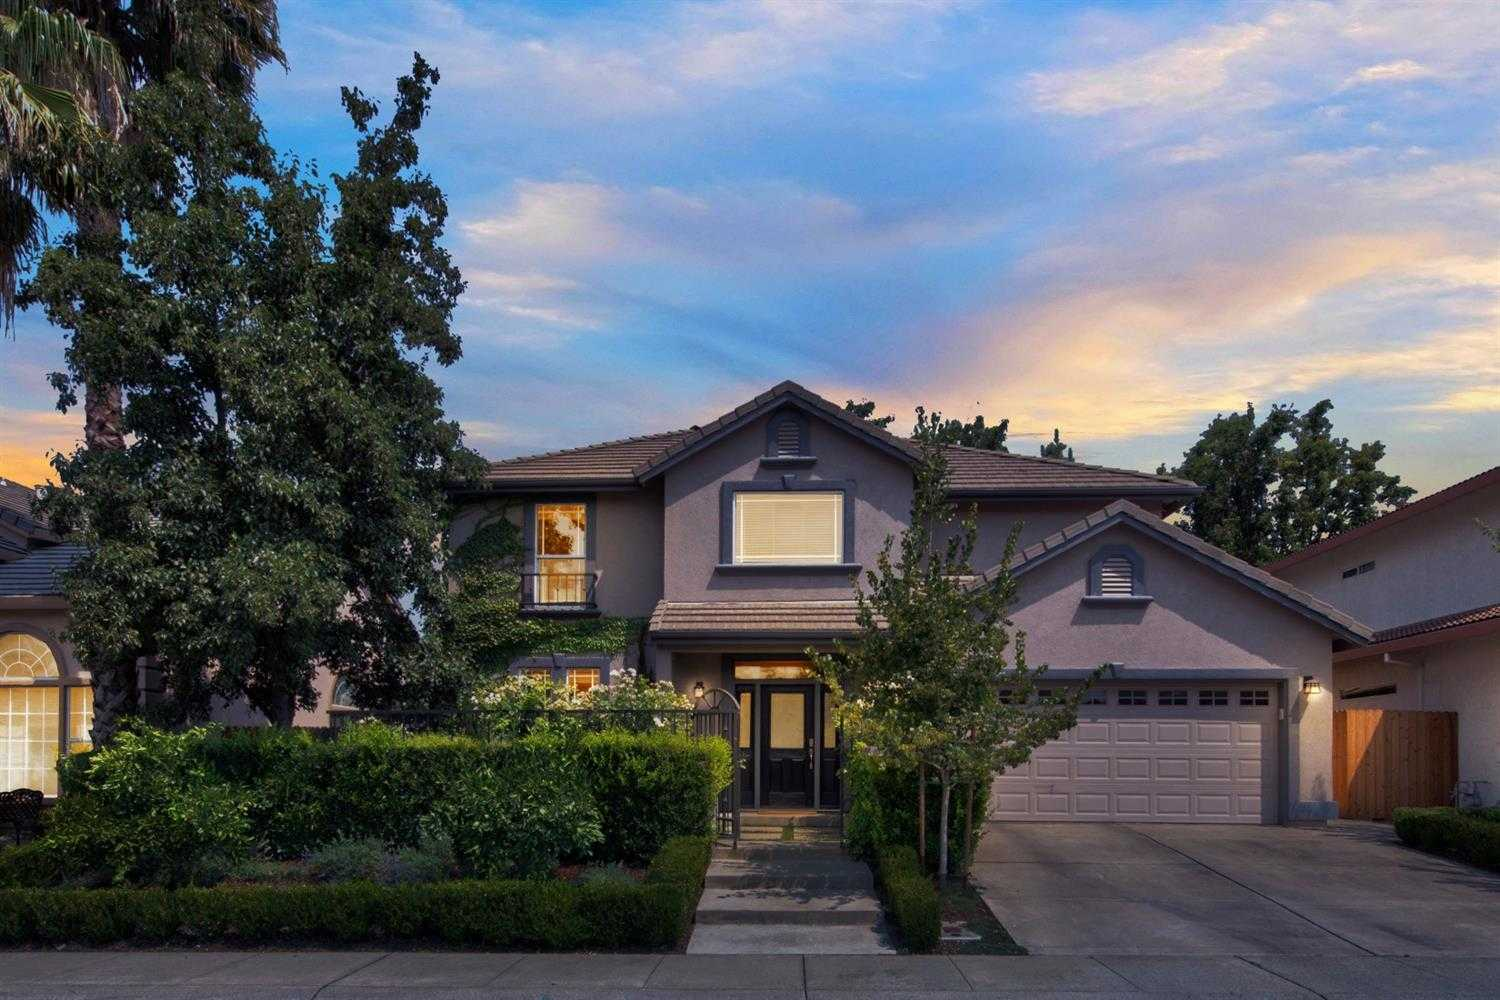 $760,000 - 4Br/3Ba -  for Sale in Davis